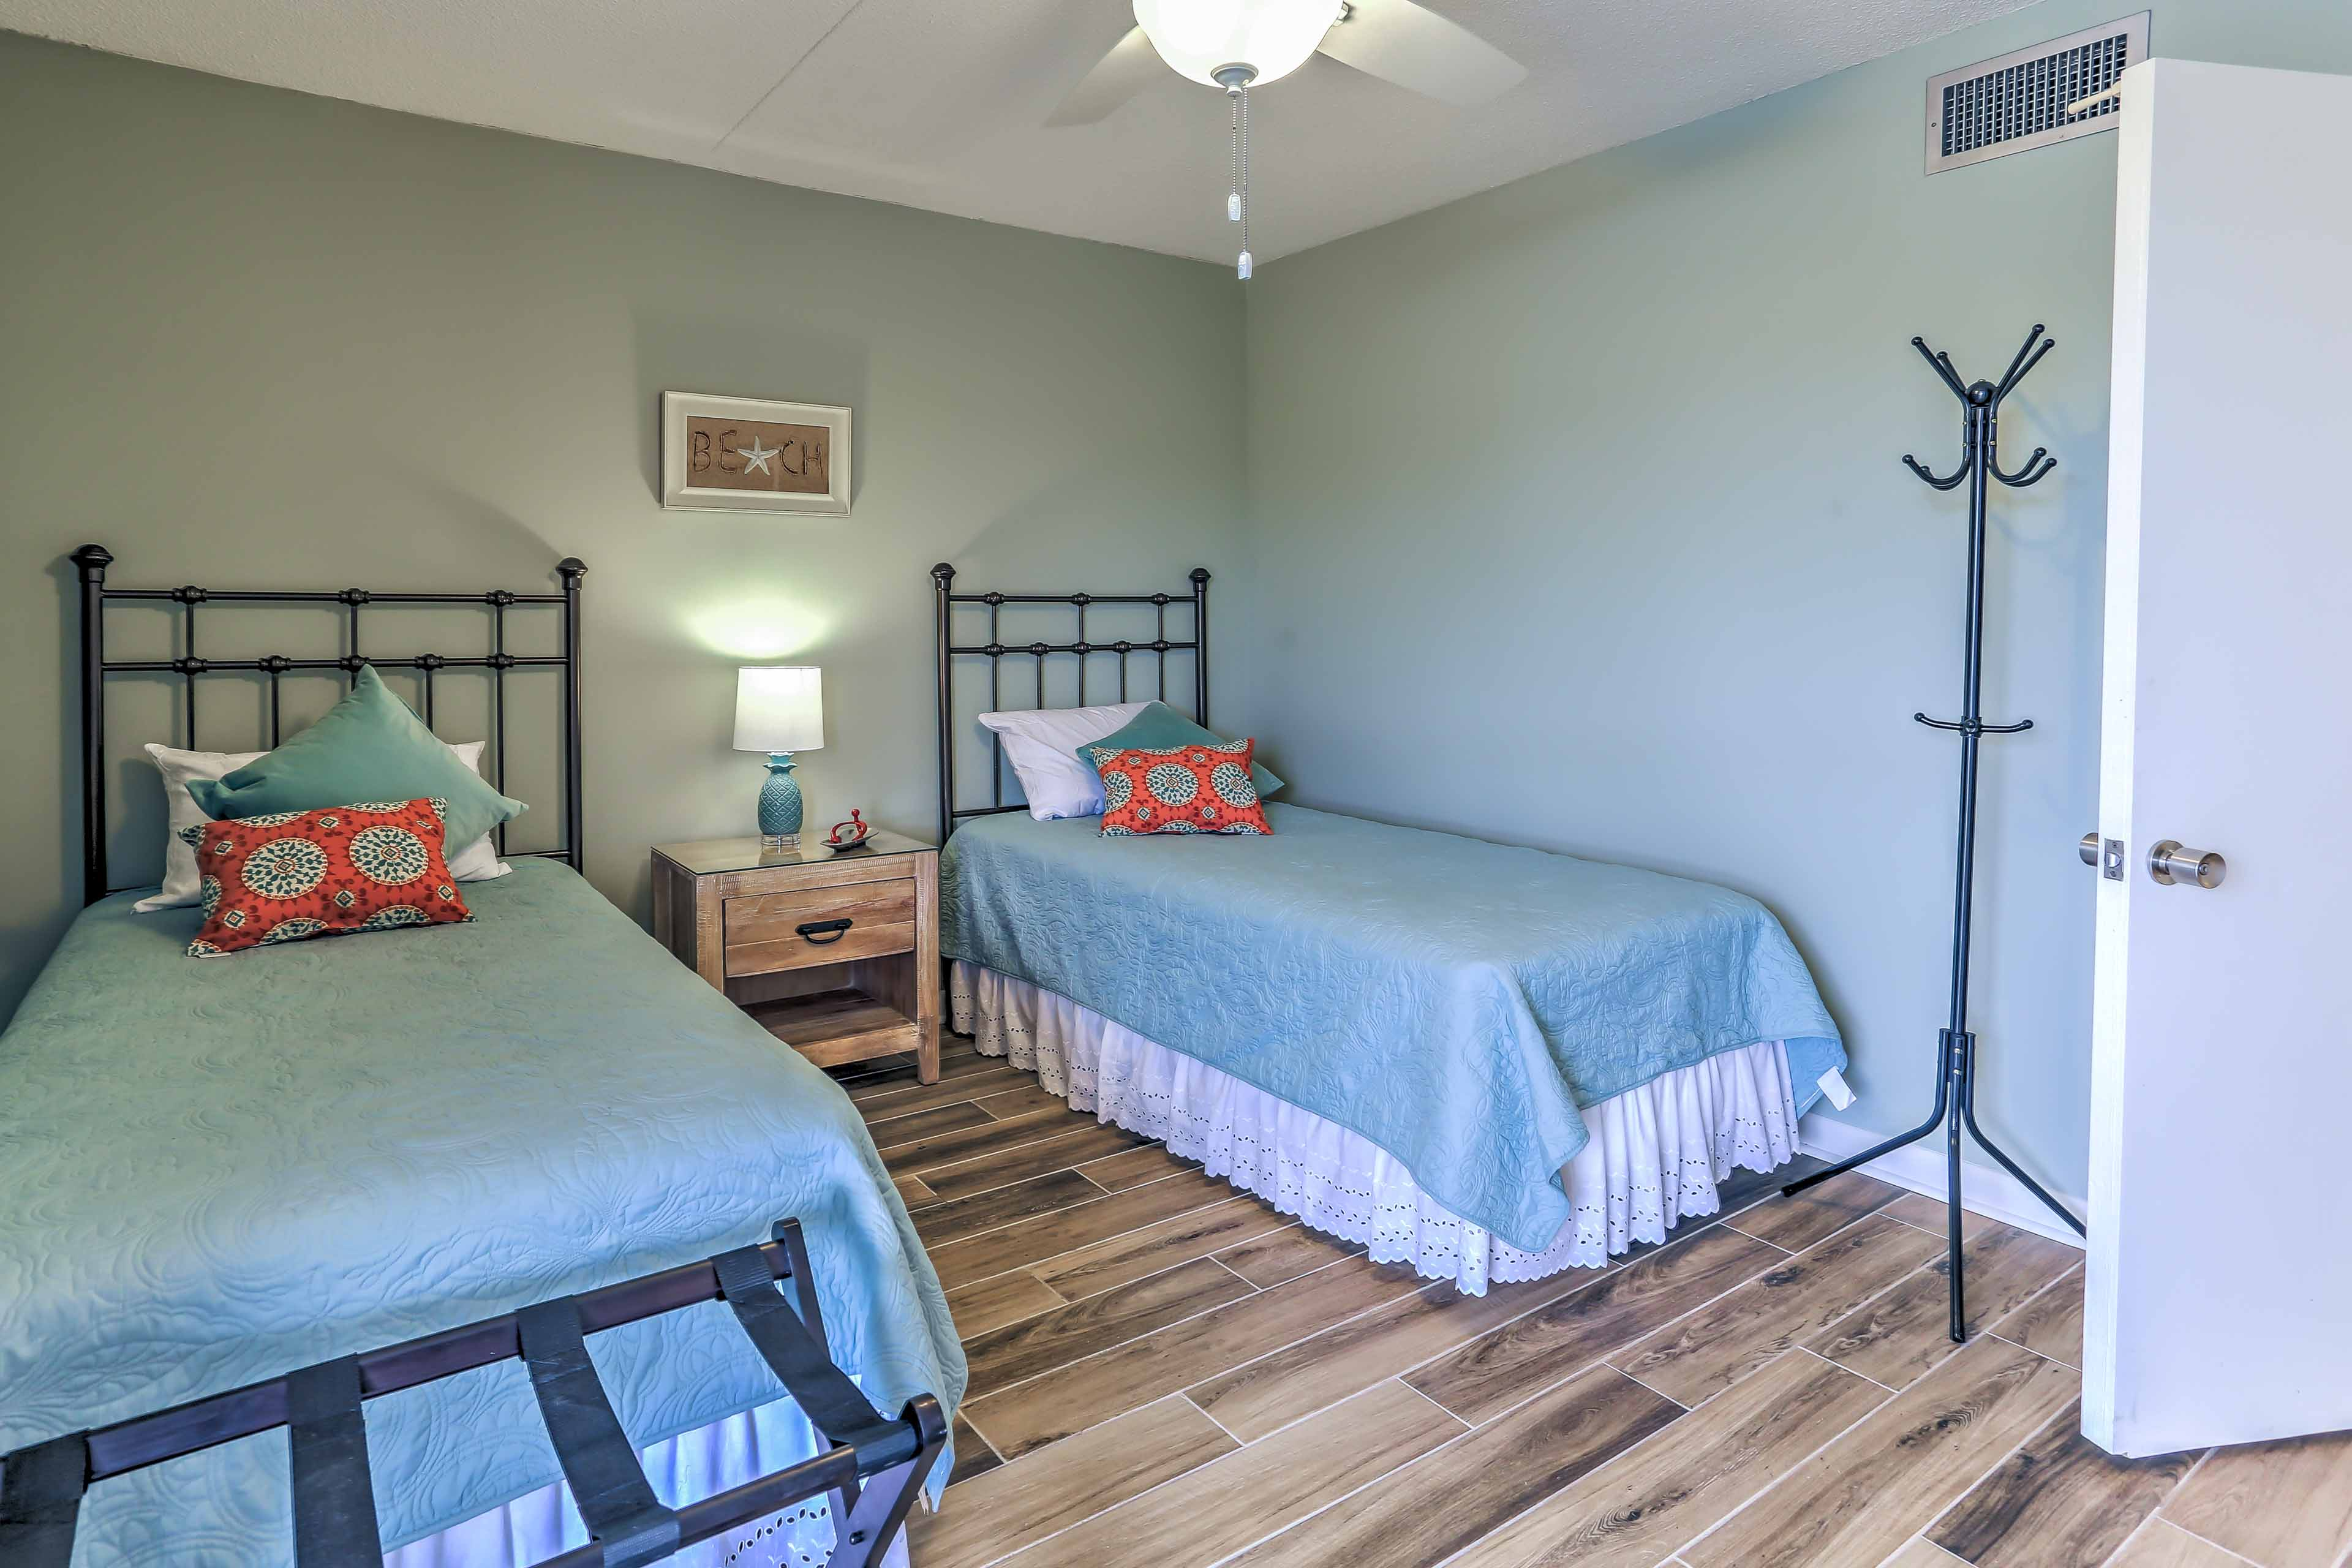 Wake up feeling ready for a new day in the 2nd bedroom with 2 twin beds.